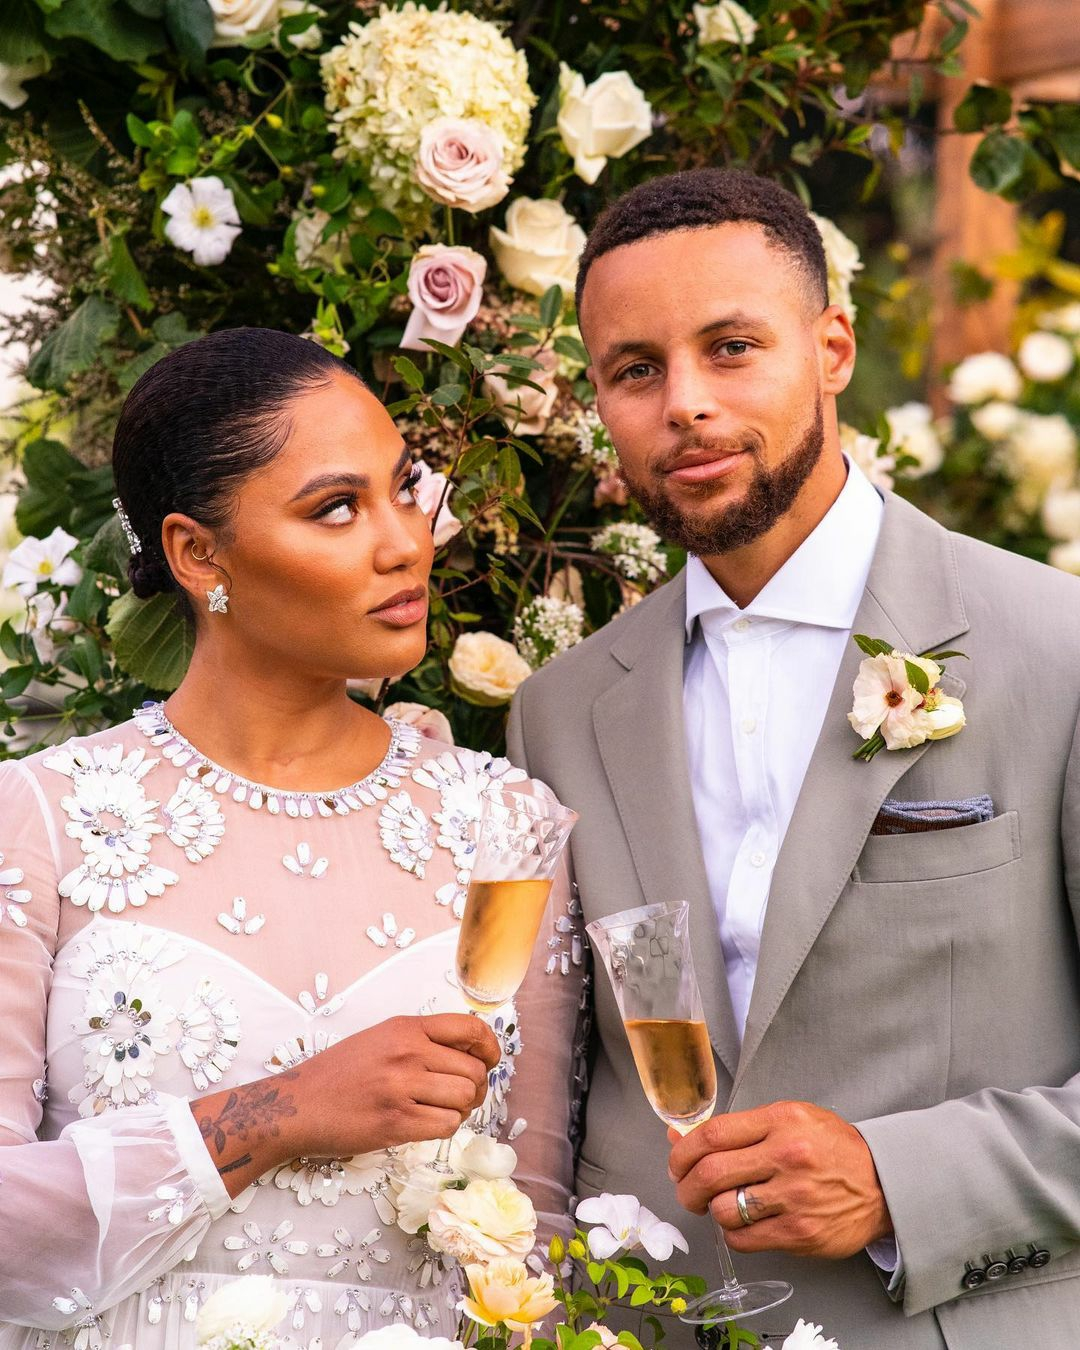 Ayesha Curry Shares Surprise Vow Renewal Ceremony Planned by Husband Steph Curry